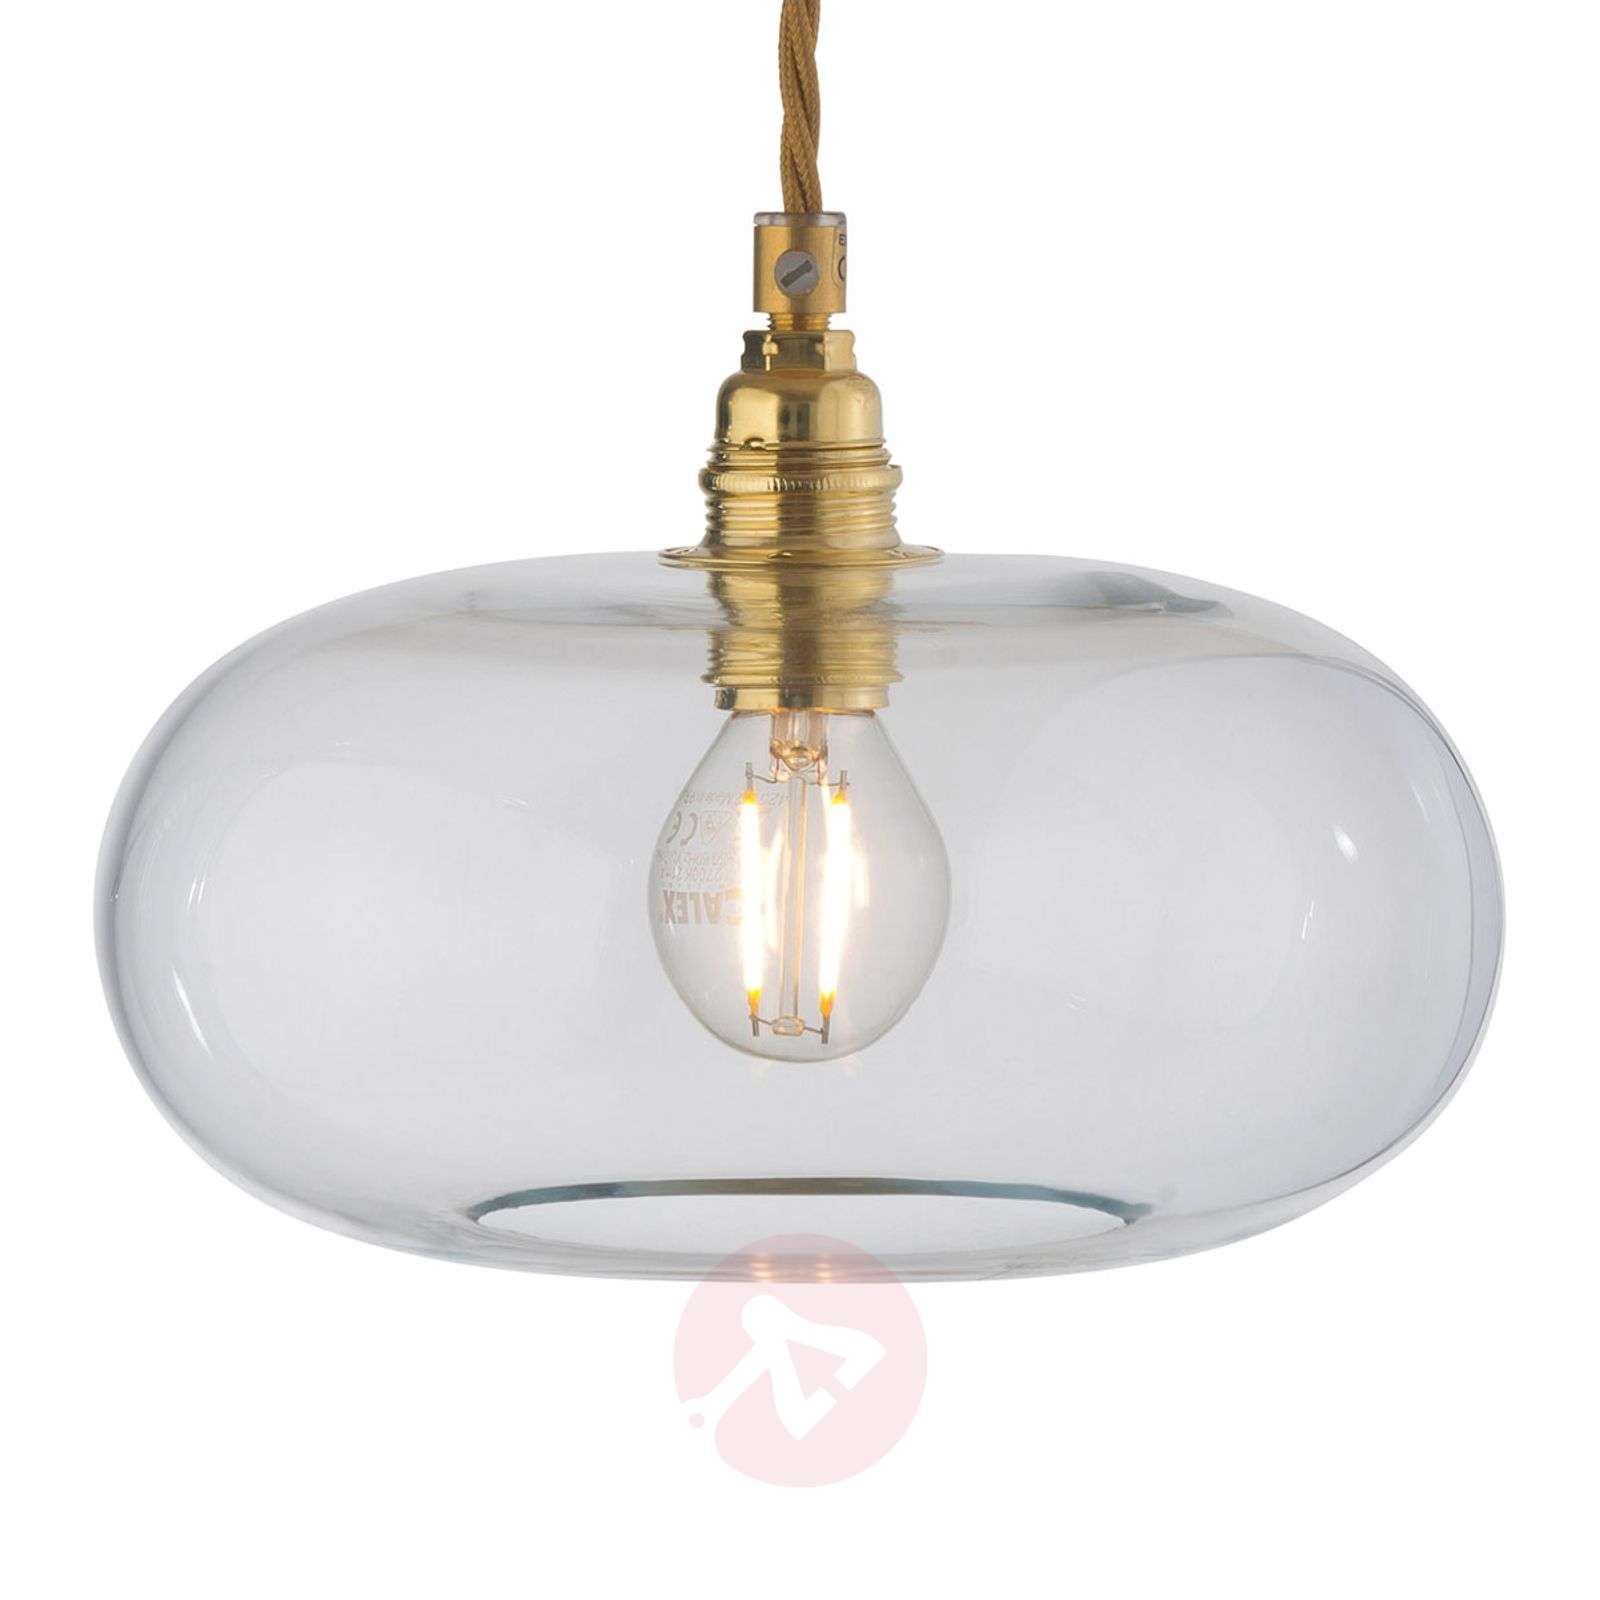 EBB and FLOW Horizon glass pendant light clear-3064001X-01